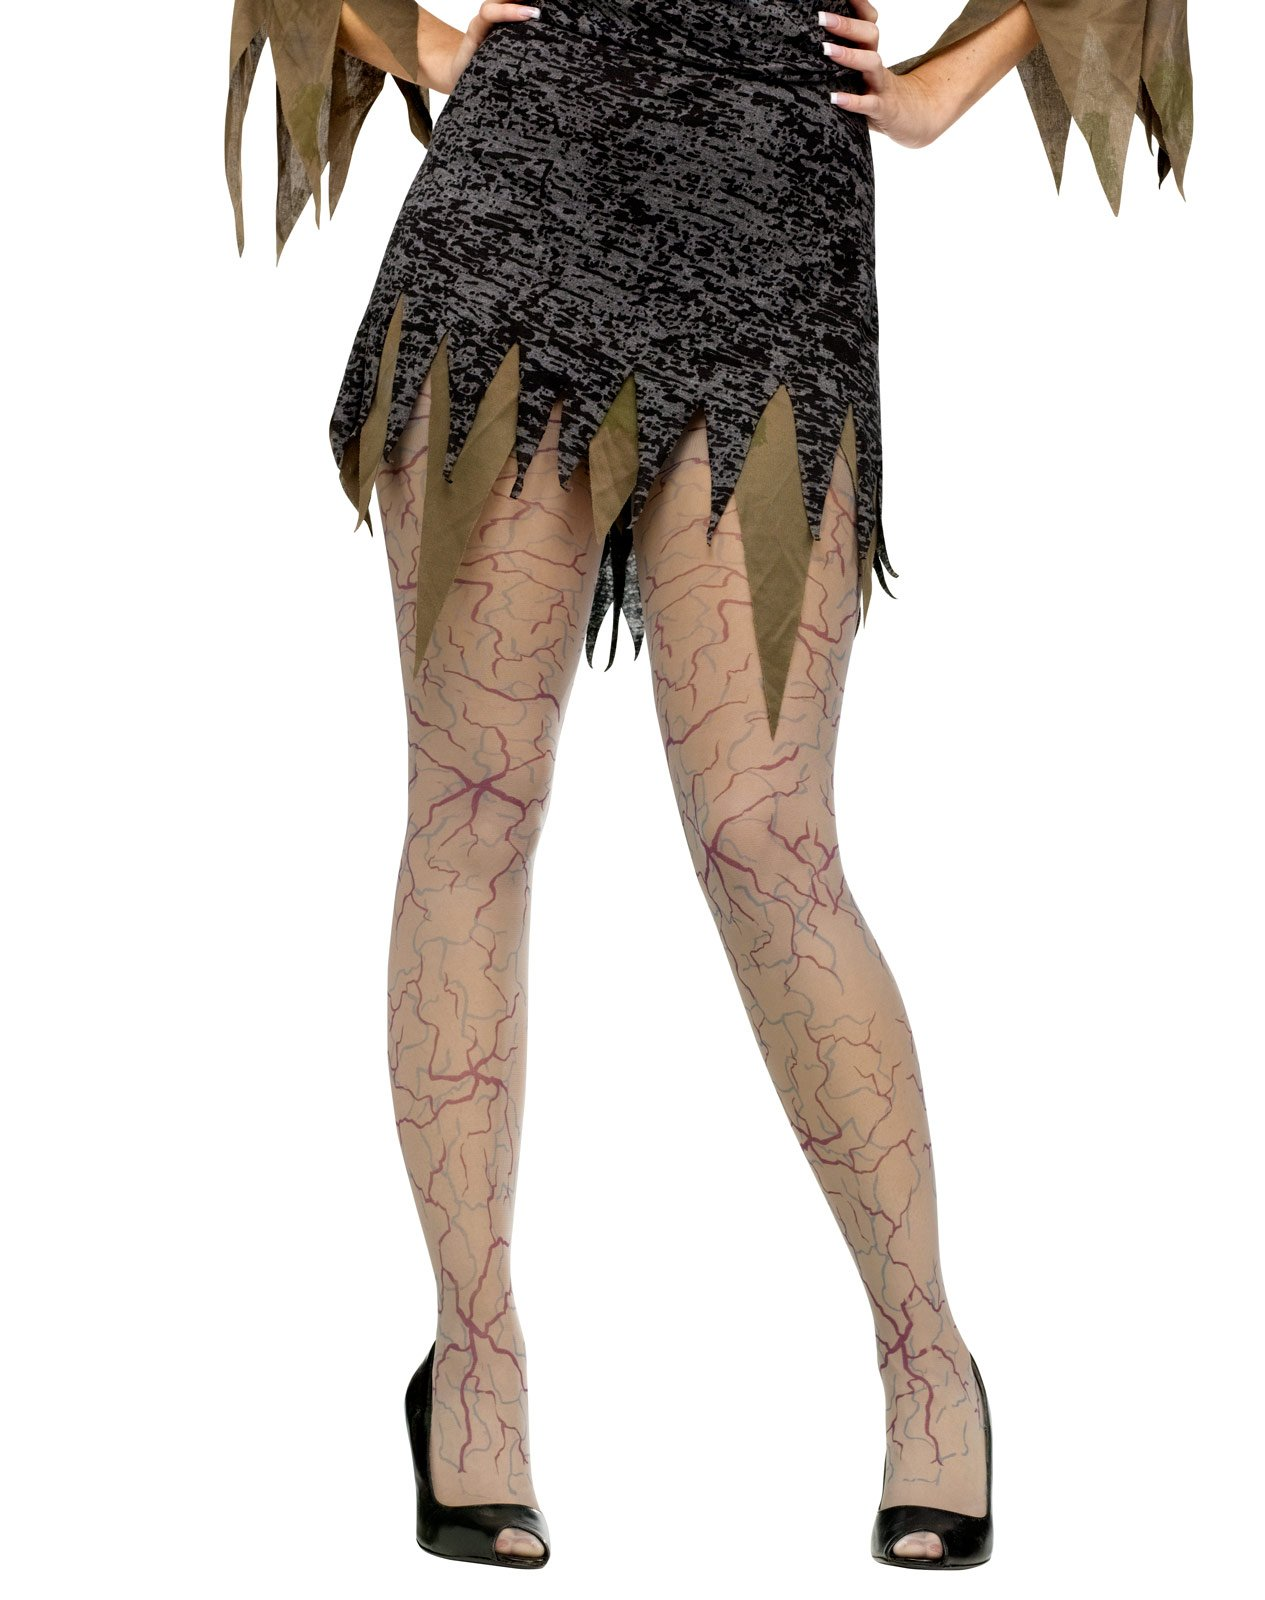 Zombie Veins Tights (Adult)